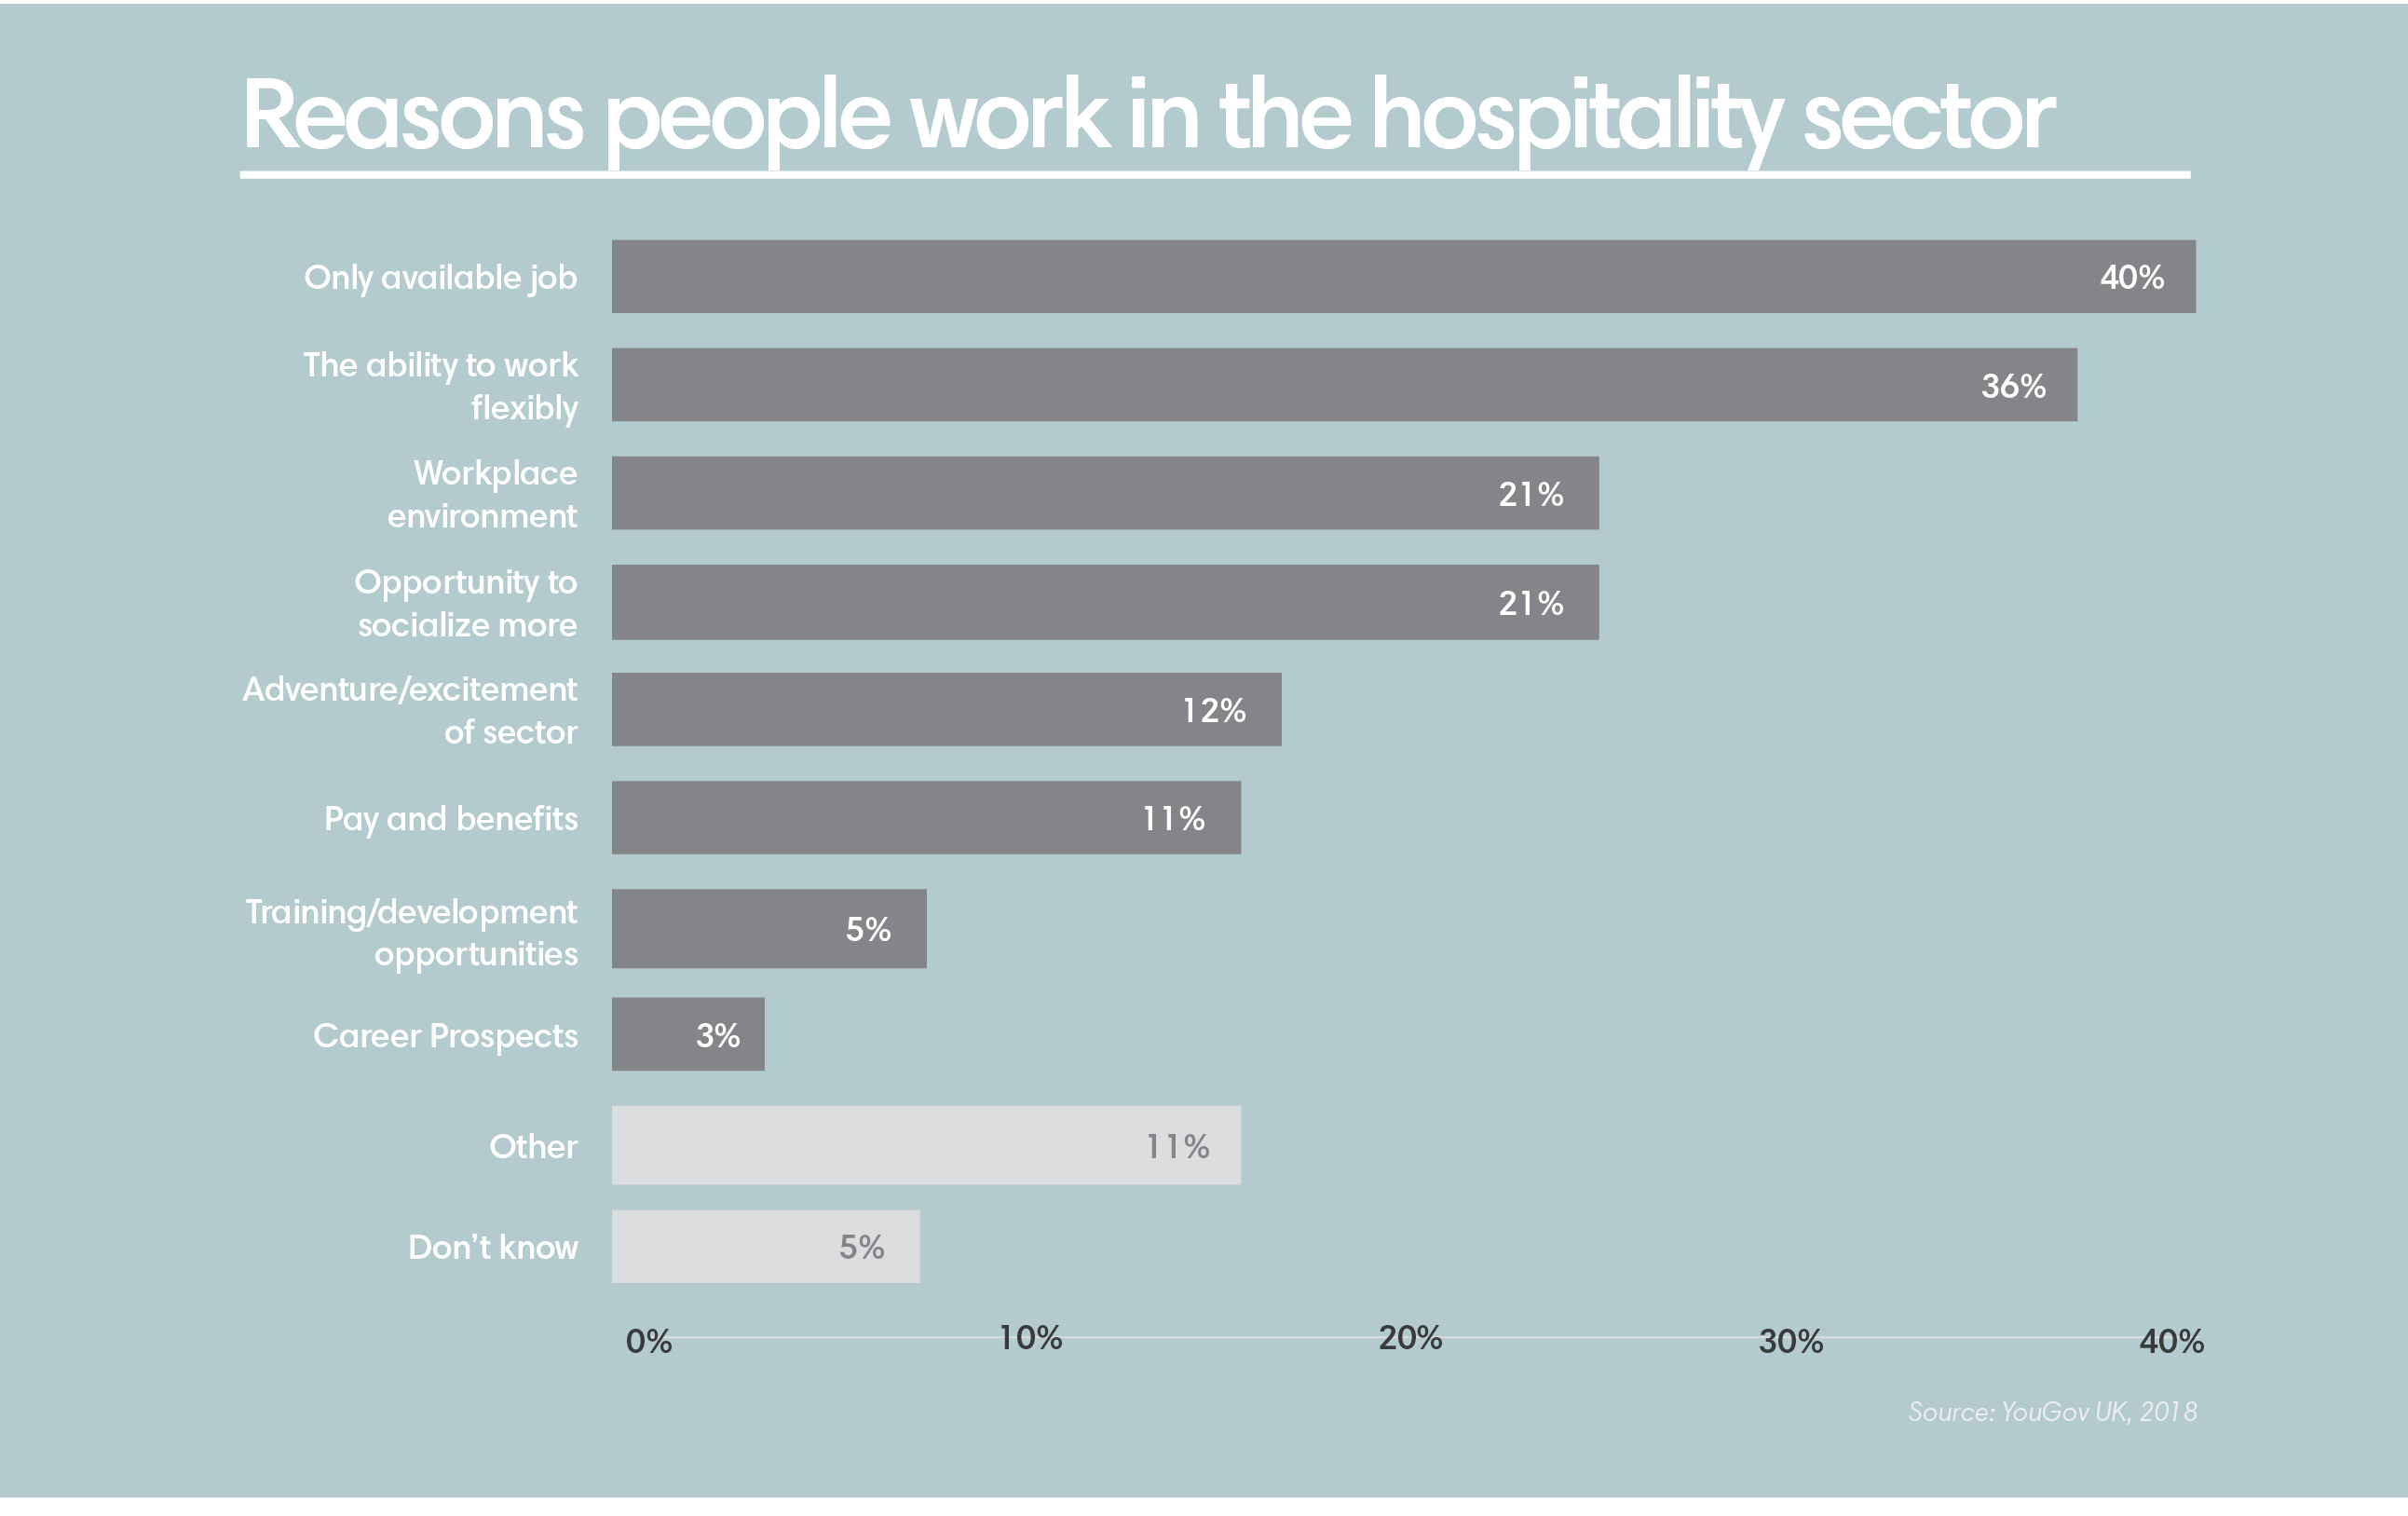 A chart showing reasons people work in the hospitality sector, with 40% naming that it's the only available job, and 36% saying work flexibility.